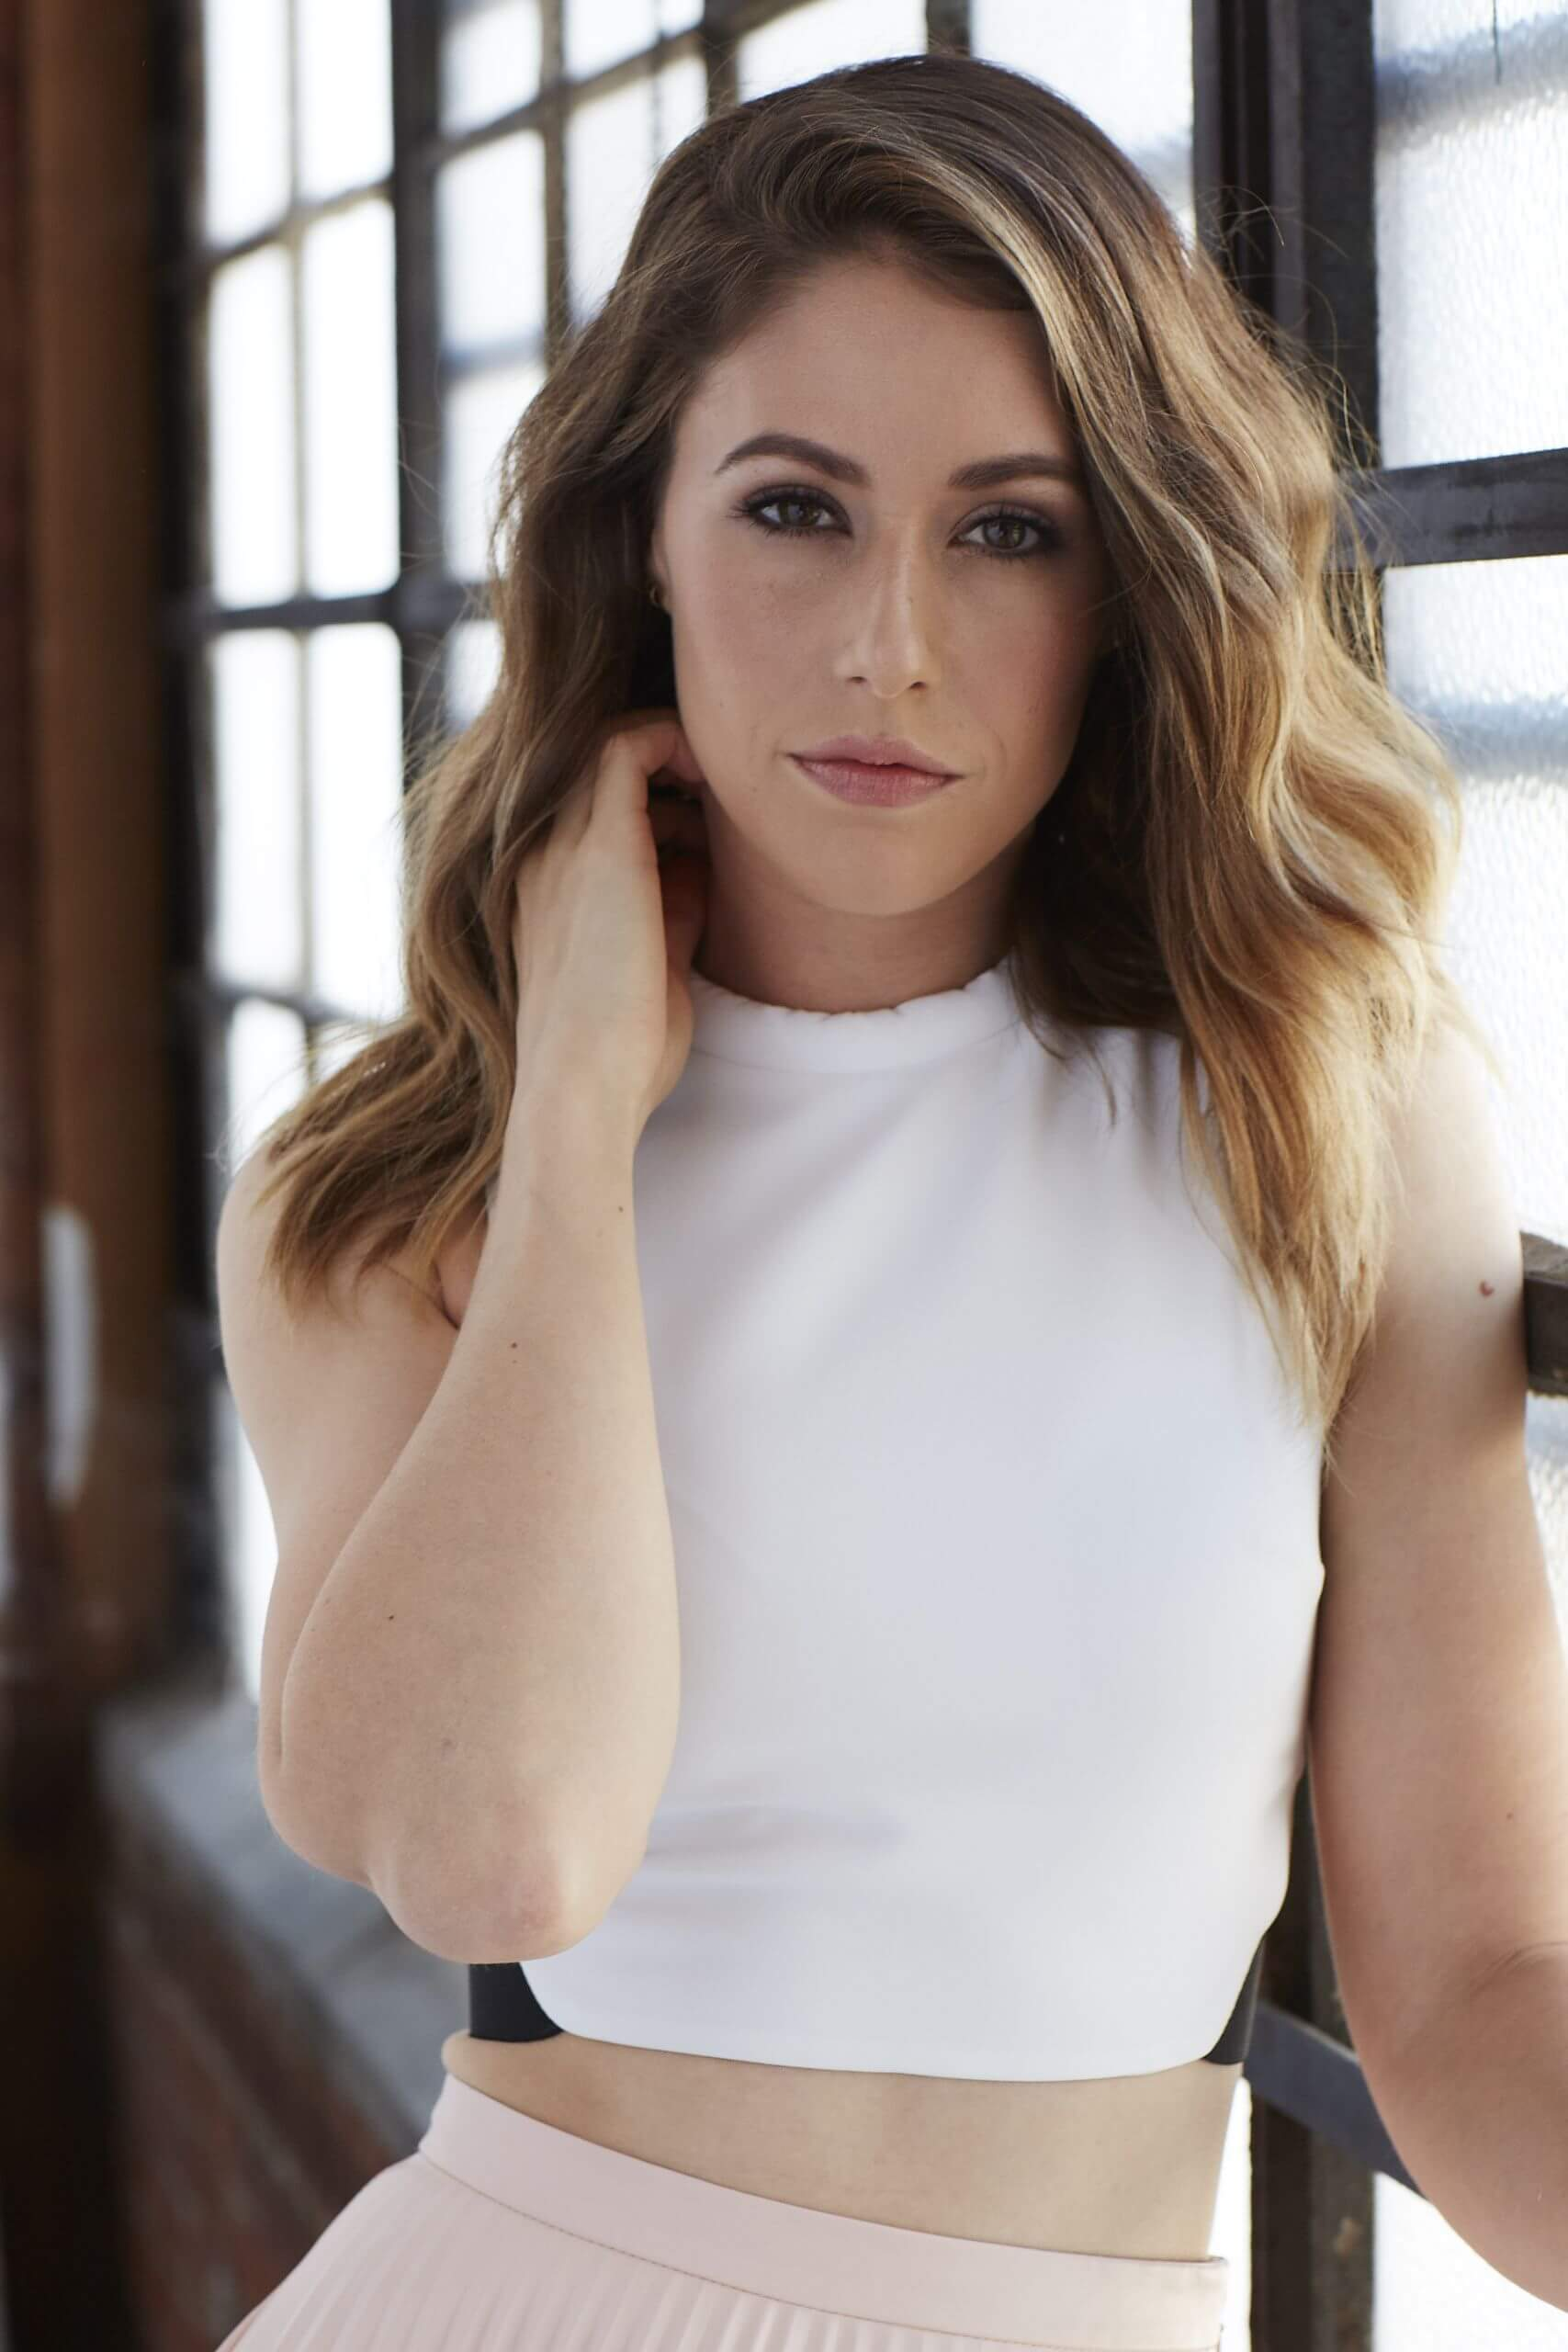 Amanda Crew Topless 49 hot pictures of amanda crew which will rock your world